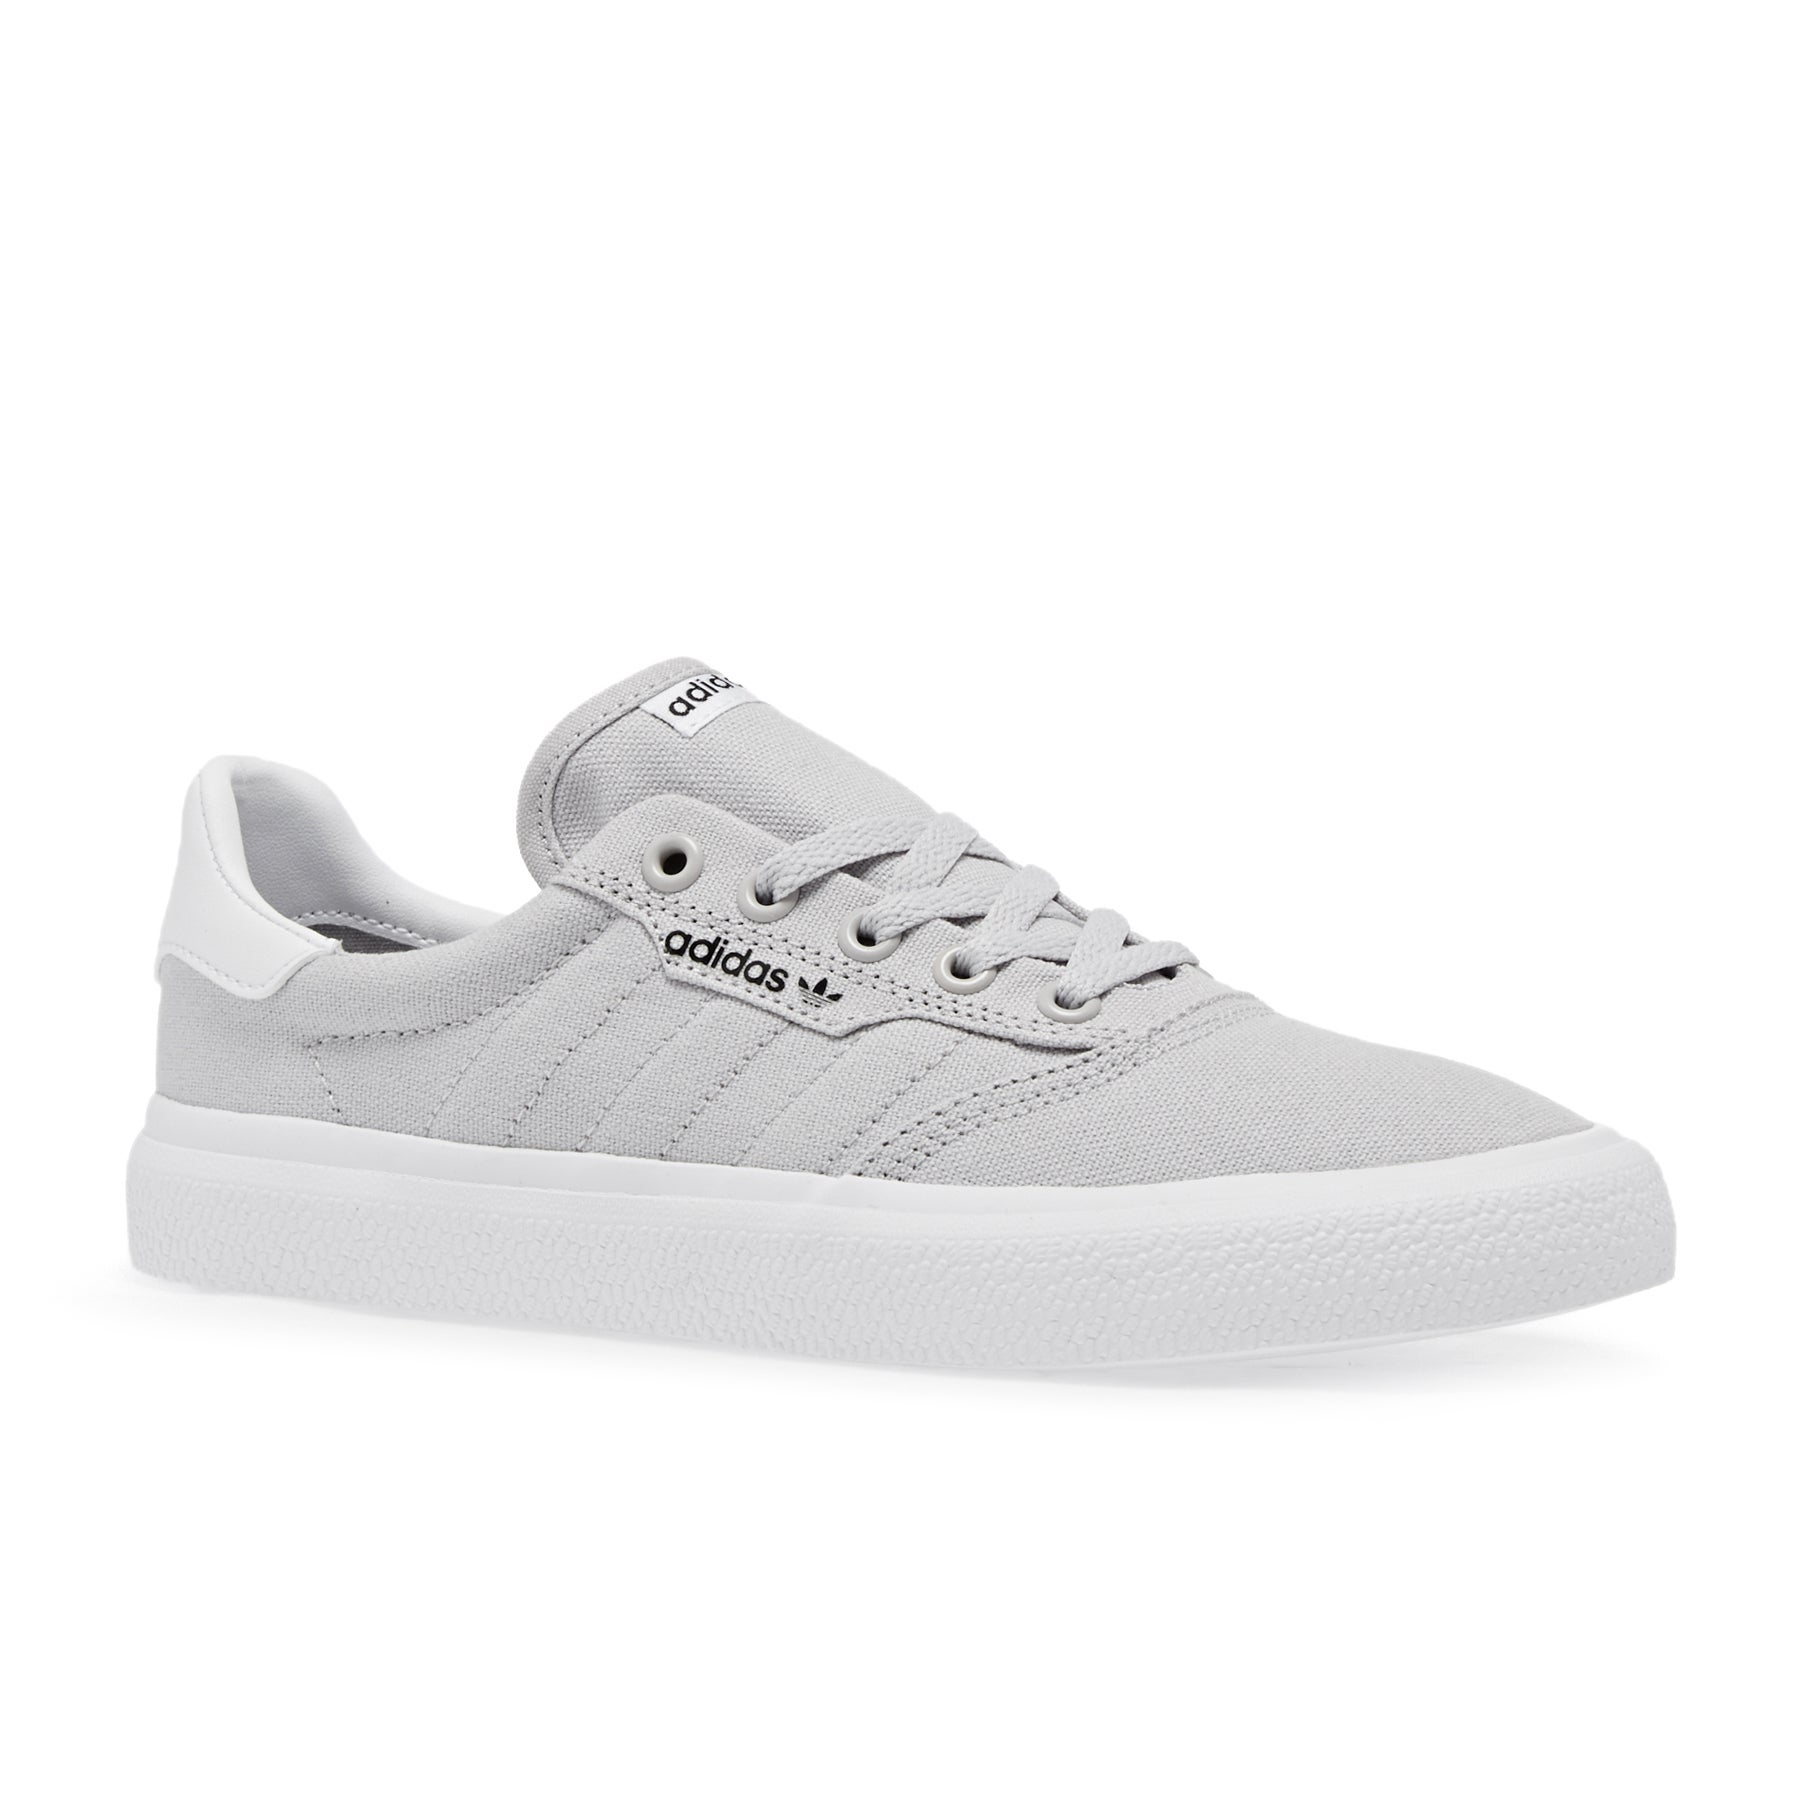 Adidas 3MC Kids Shoes - Light Grey Cloud White Black